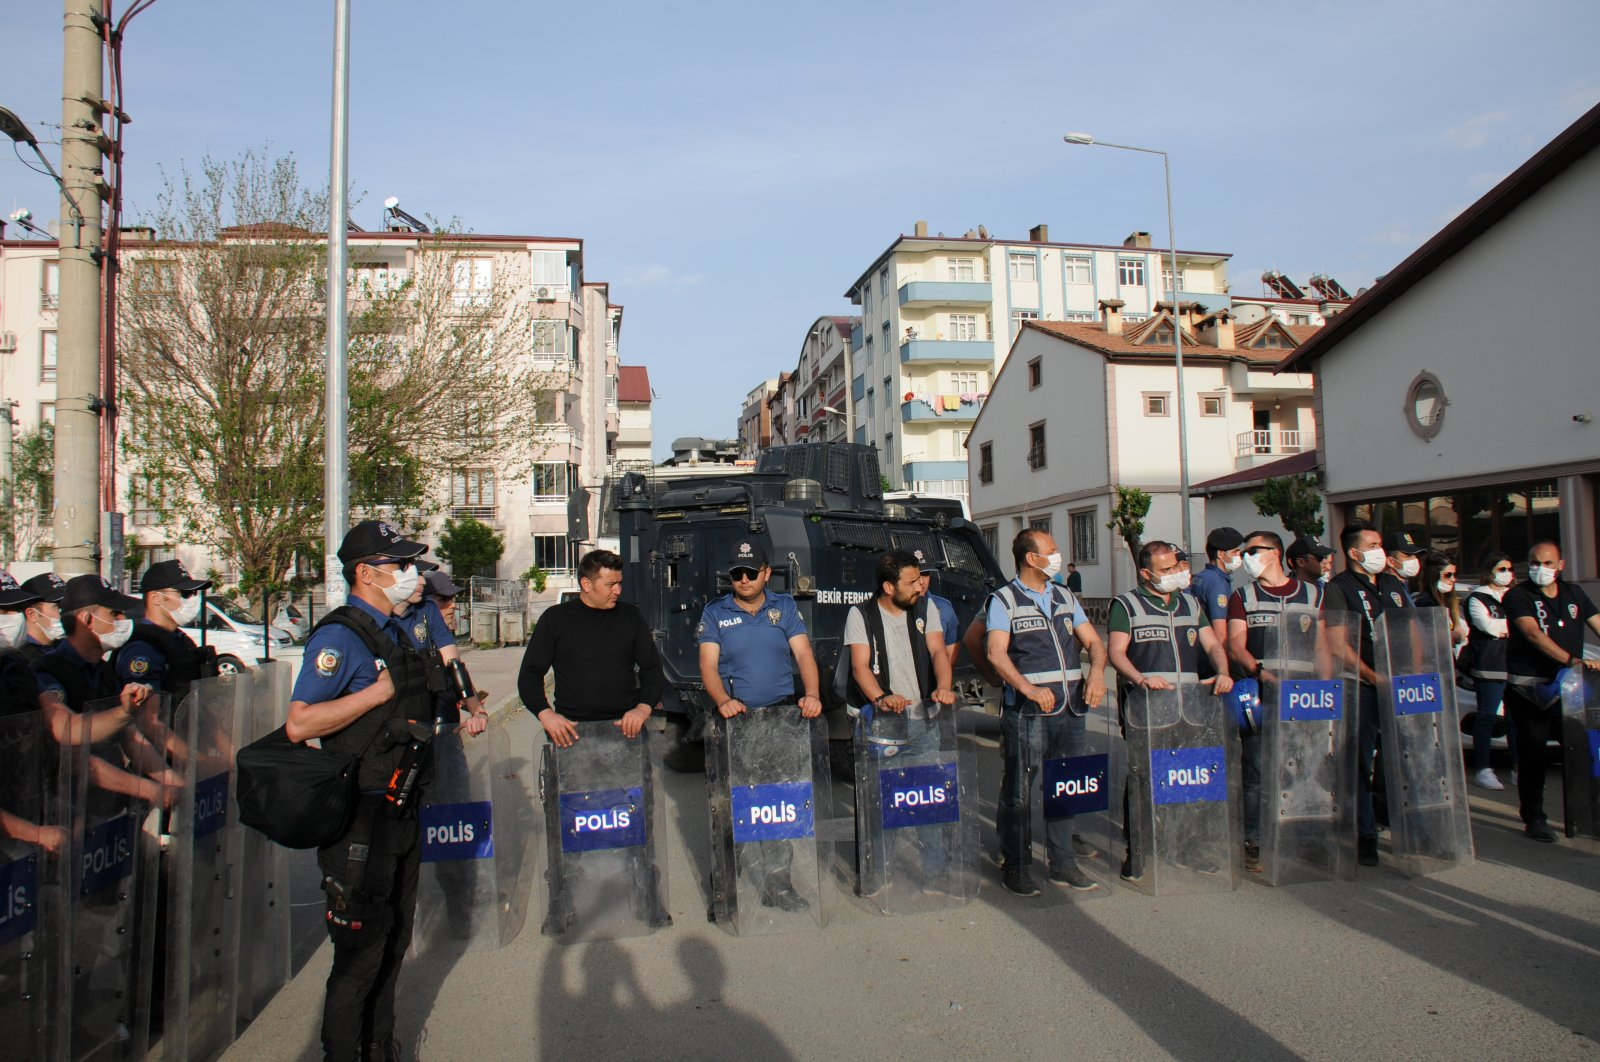 Police wait outside the courthouse during the arrested mayor's hearing in eastern Iğdır province, Turkey, May 18, 2020. (AA Photo)